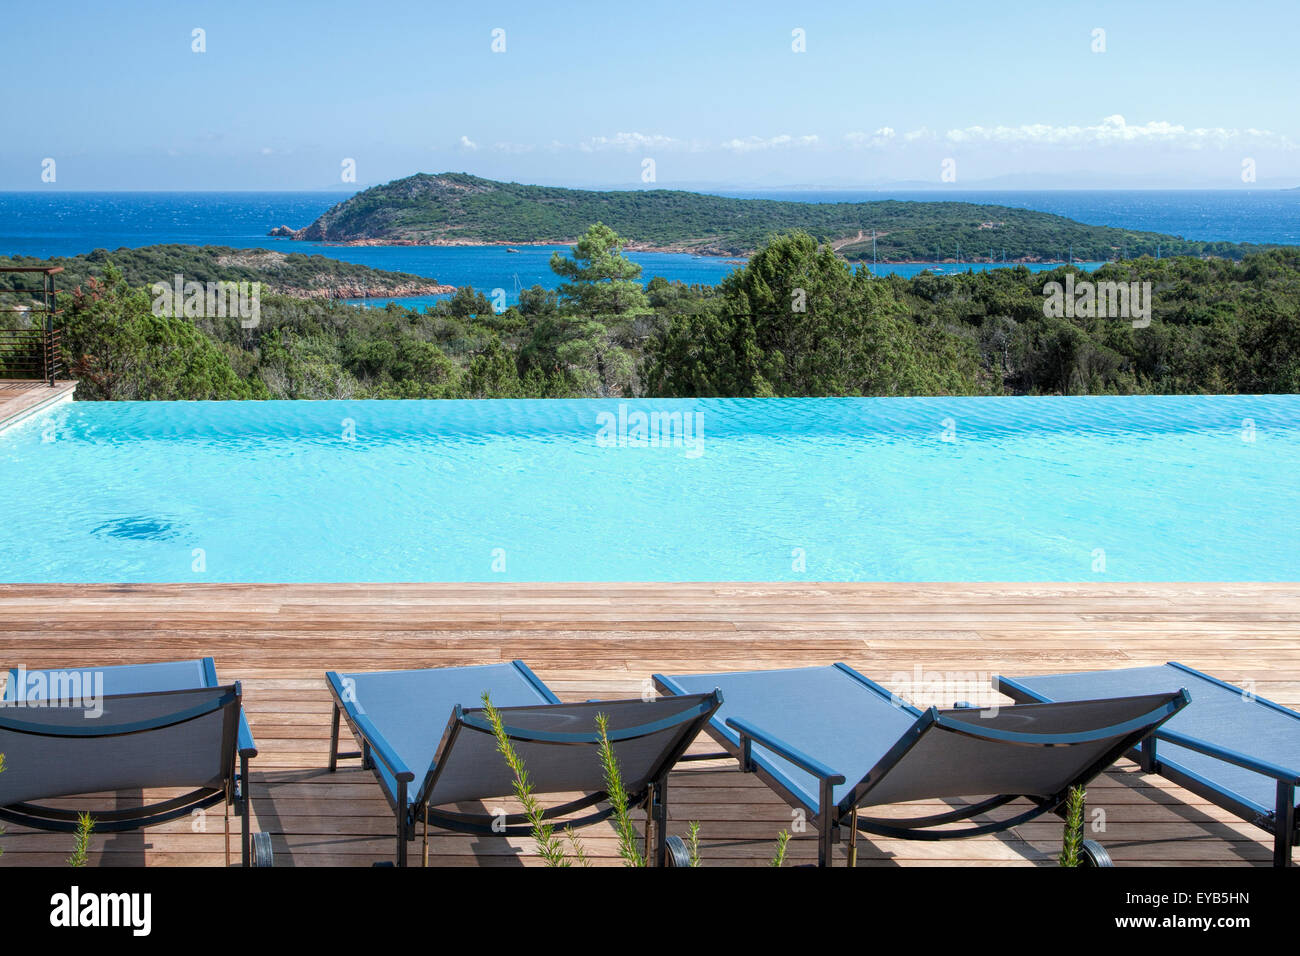 Infinity pool europe stock photos infinity pool europe stock images alamy - Infinity pool europe ...